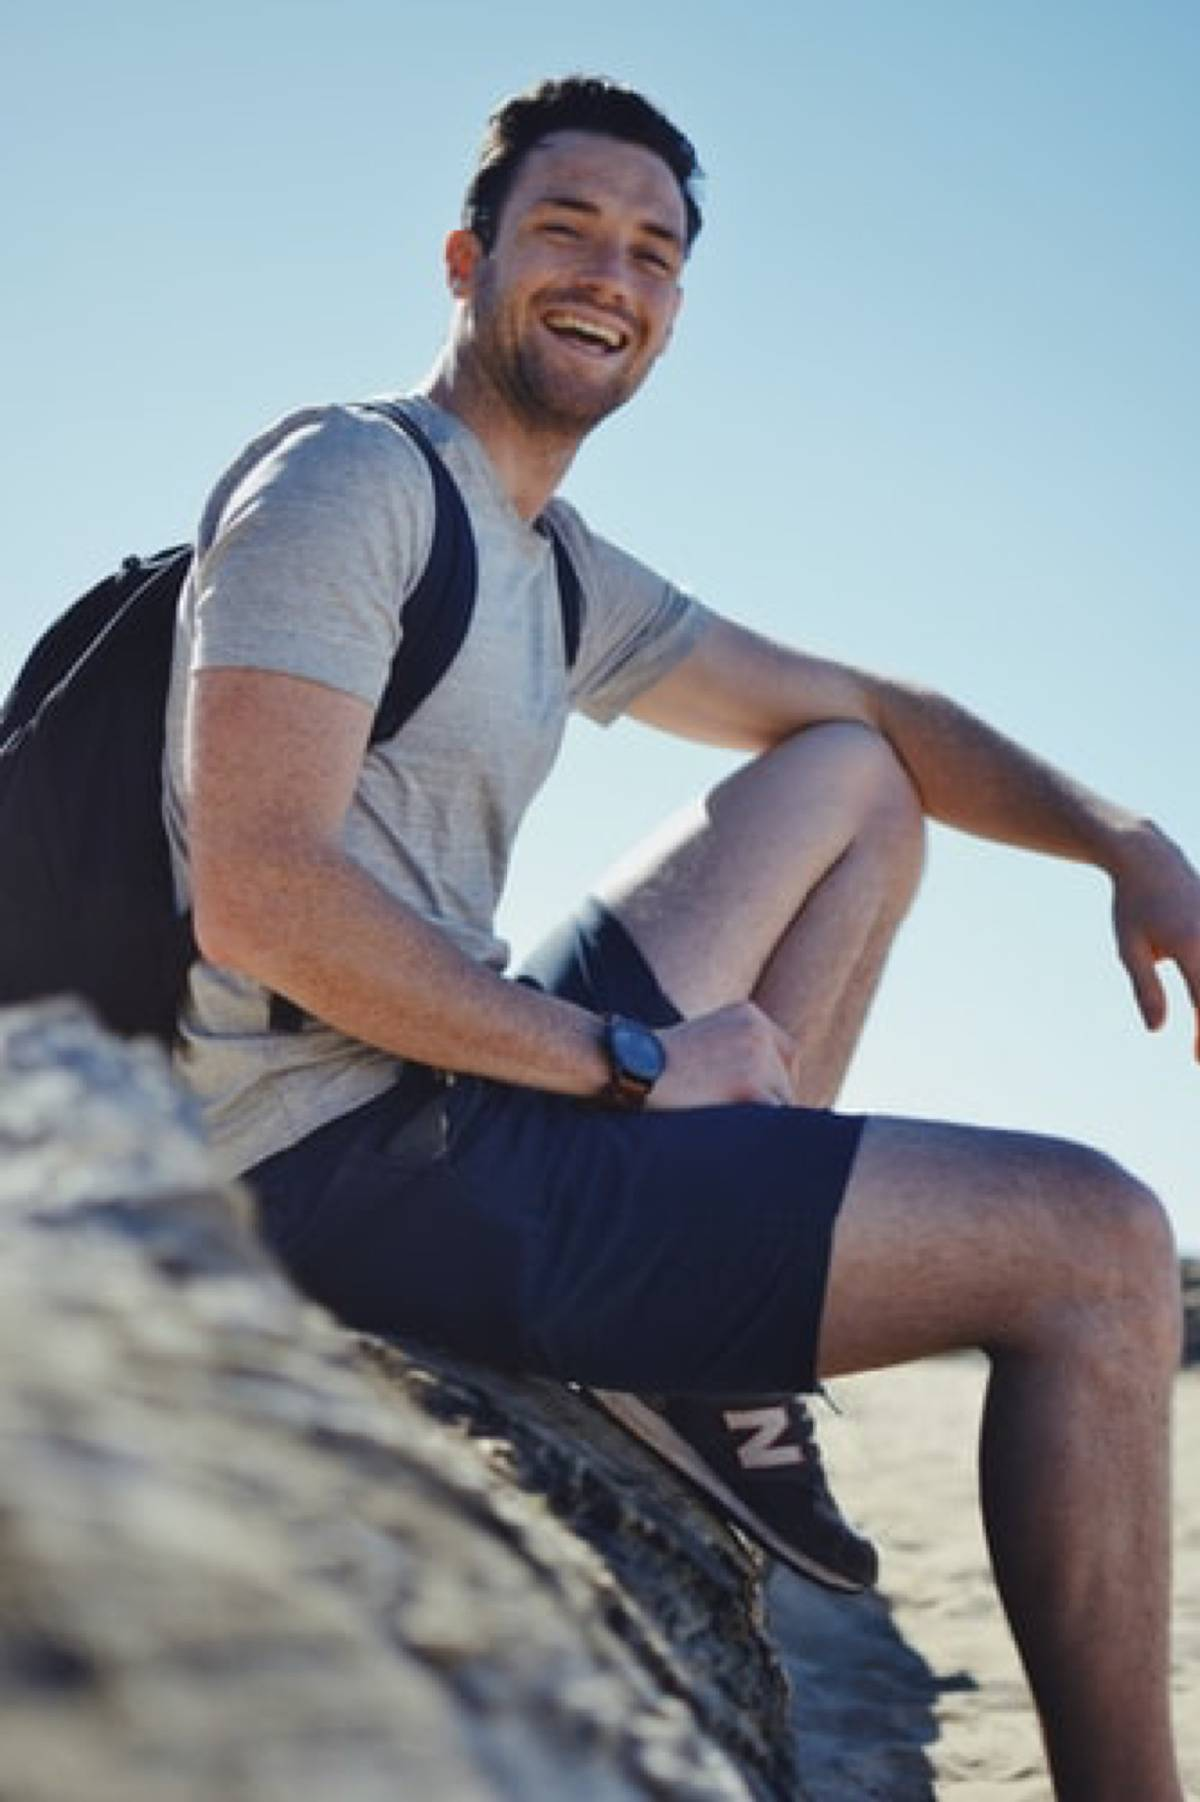 man laughing and smiling sitting on a rock